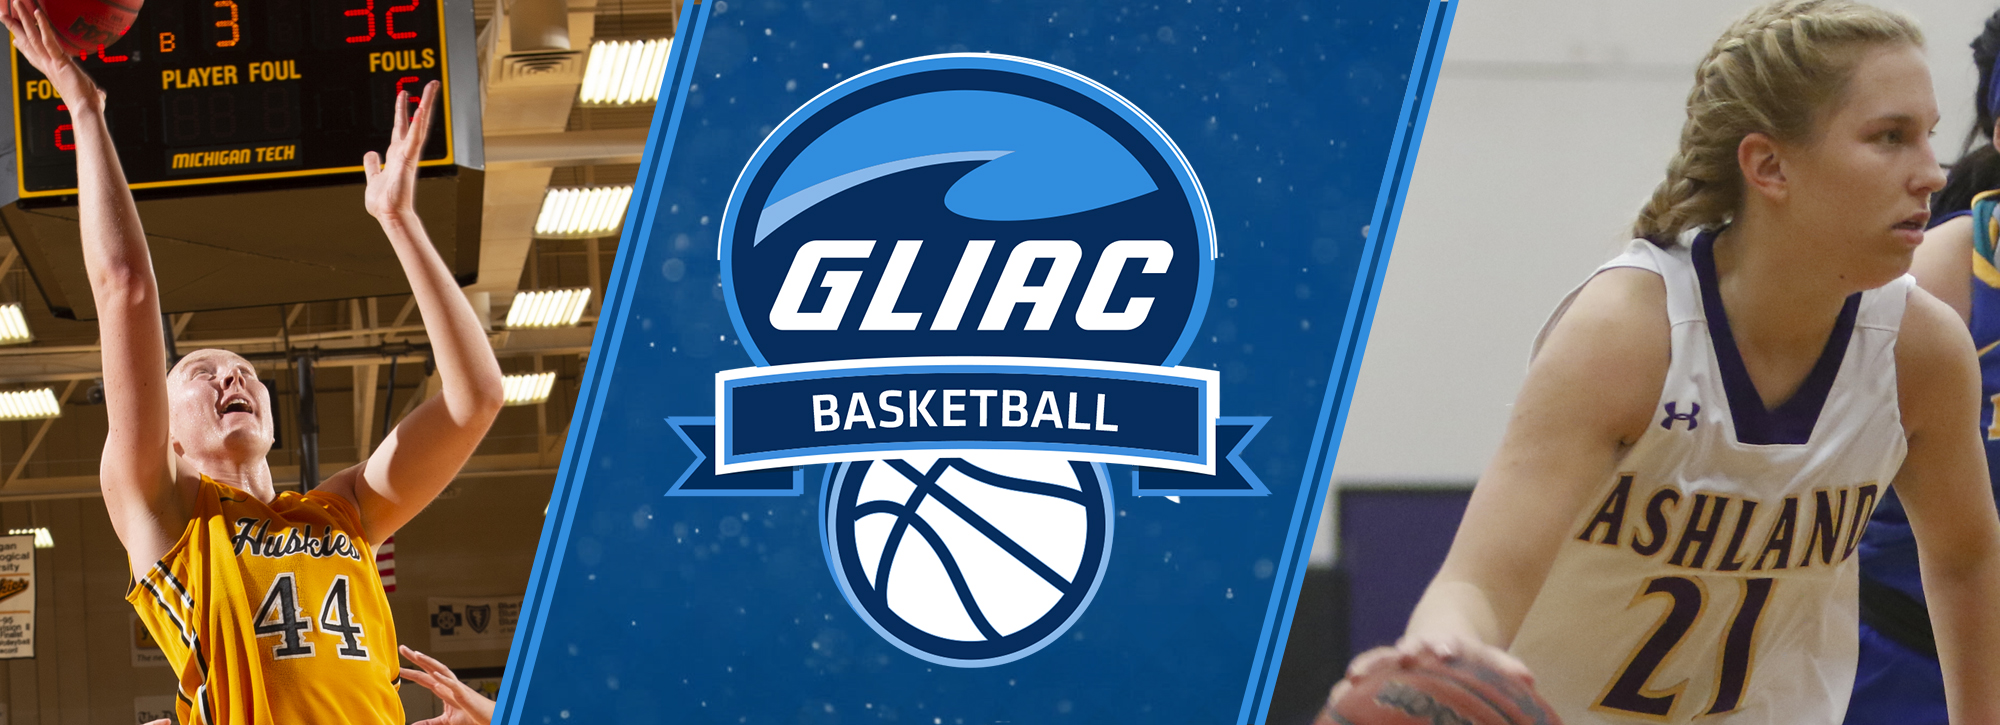 Michigan Tech's Kelliher and Ashland's Johnson earn women's basketball weekly honors